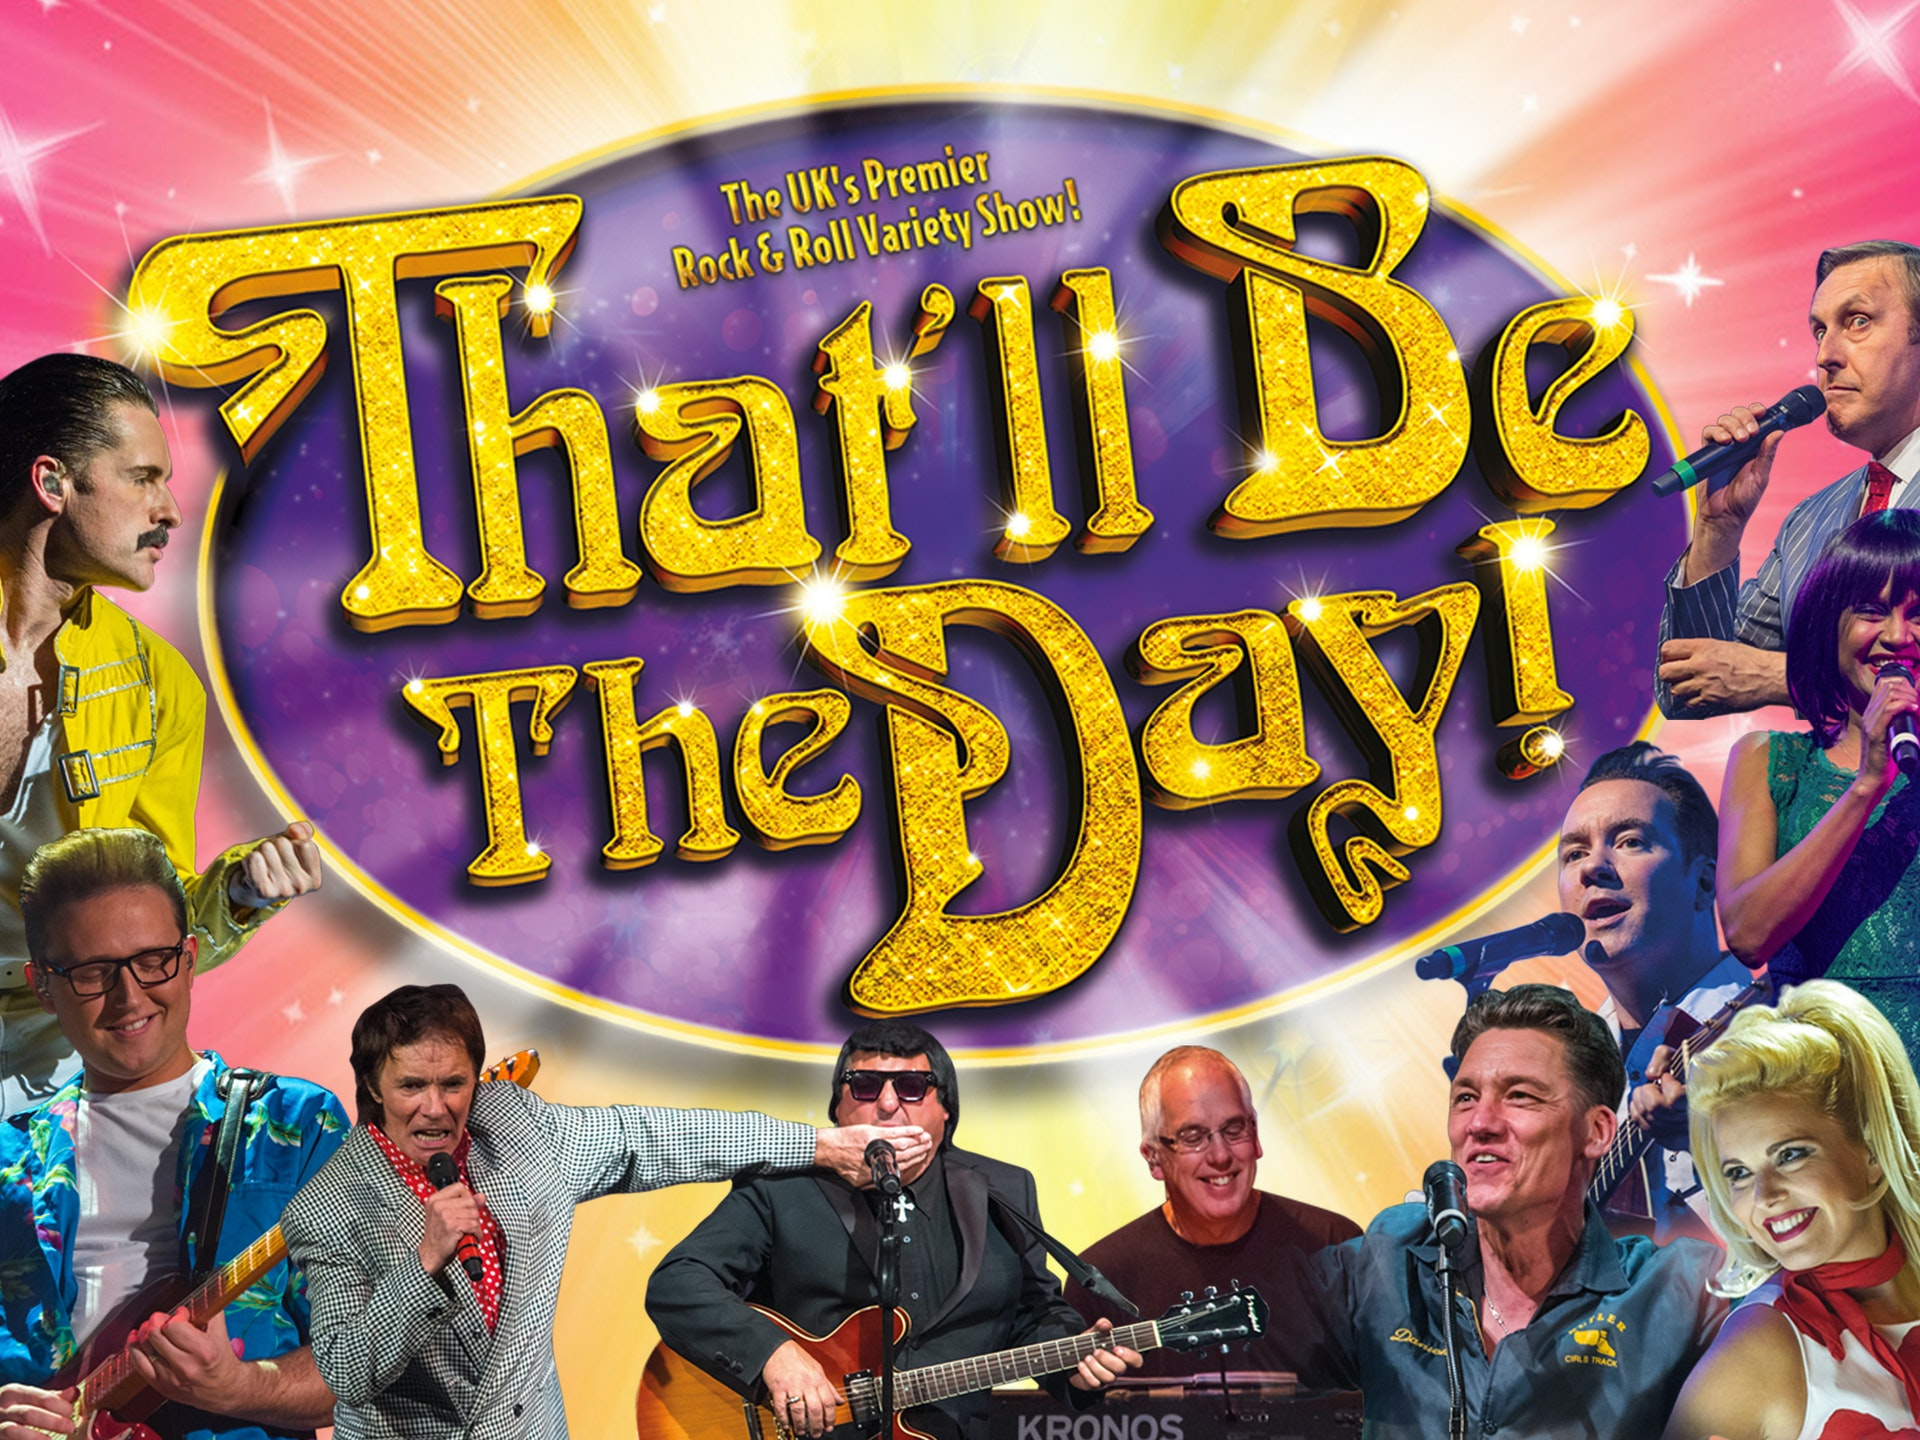 That'll Be The Day (Touring) Tour Dates & Tickets 2019 | Ents24